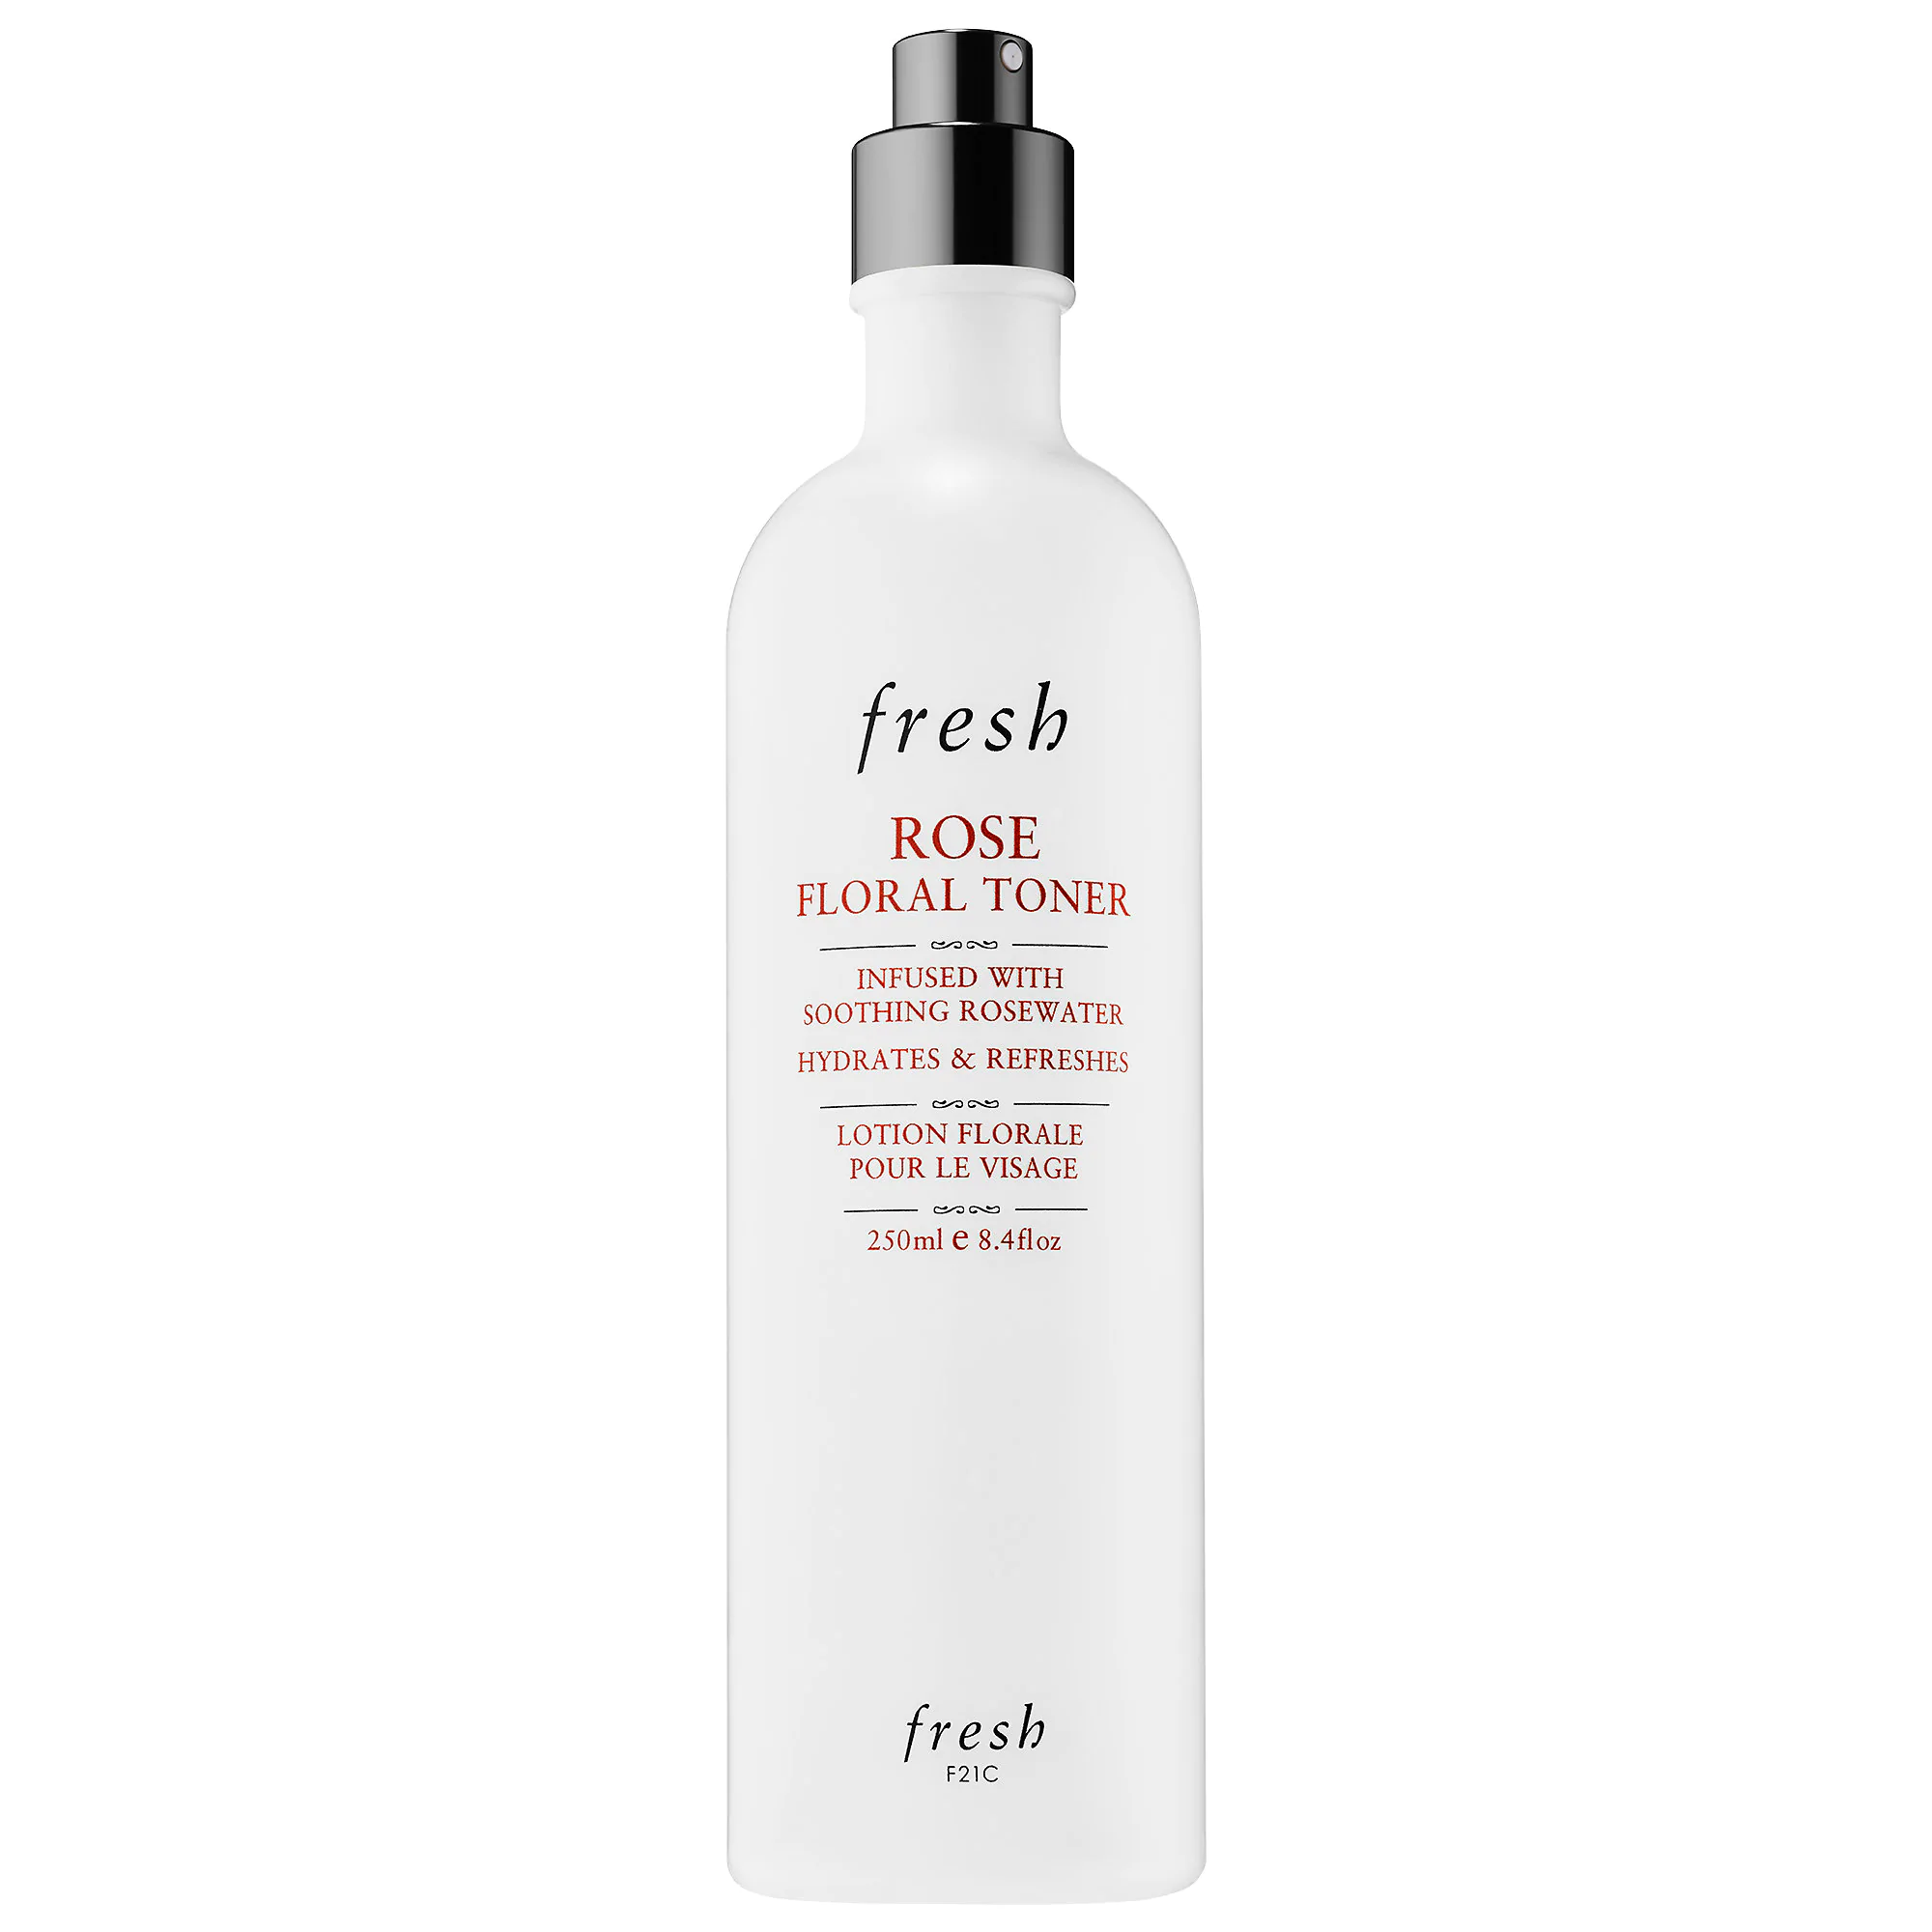 Fresh-Rose Floral Toner